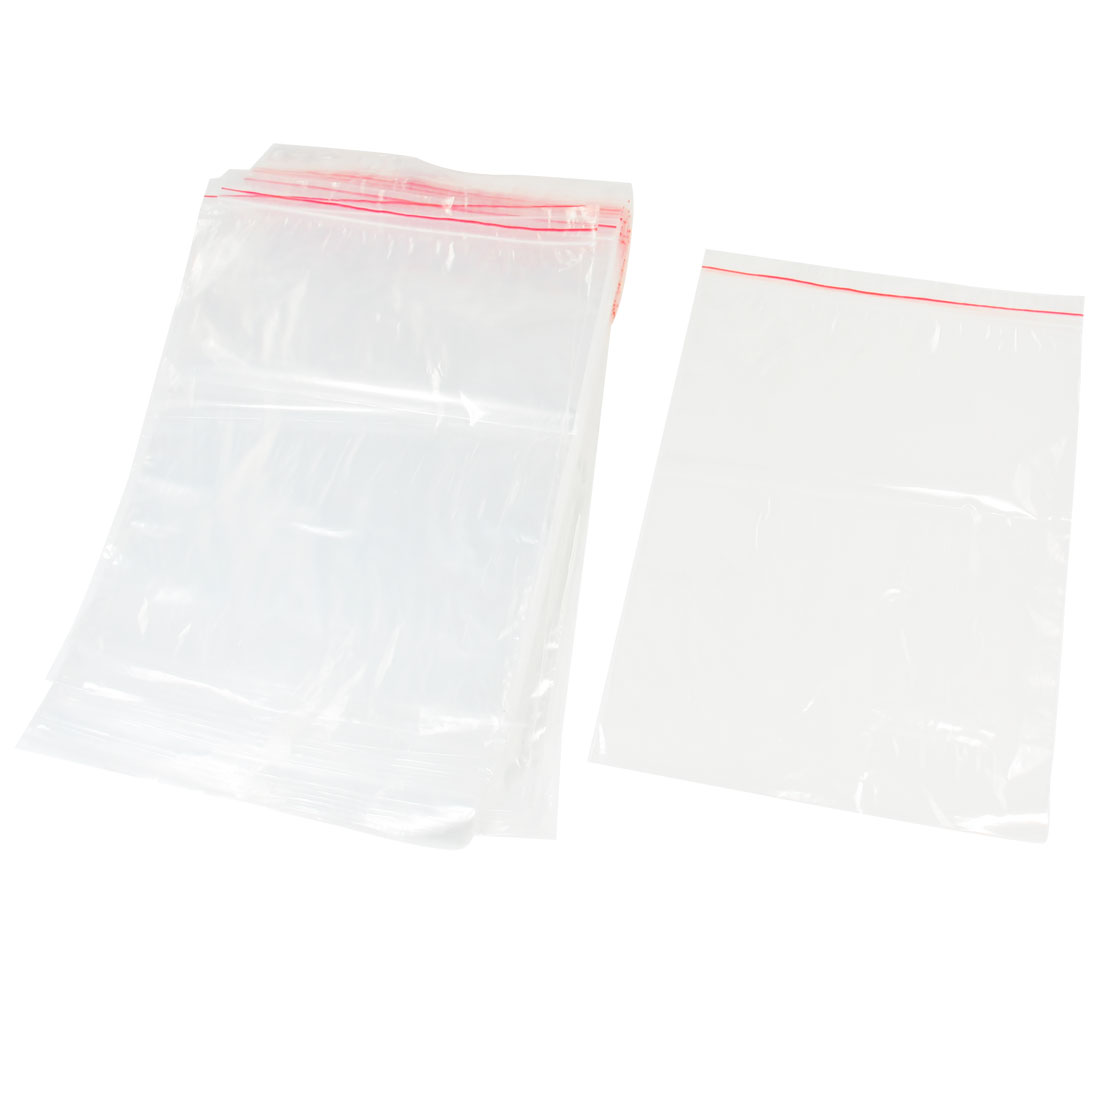 100 Pcs 26 x 18cm Clear Reclosable Grip Seal Plastic Bags